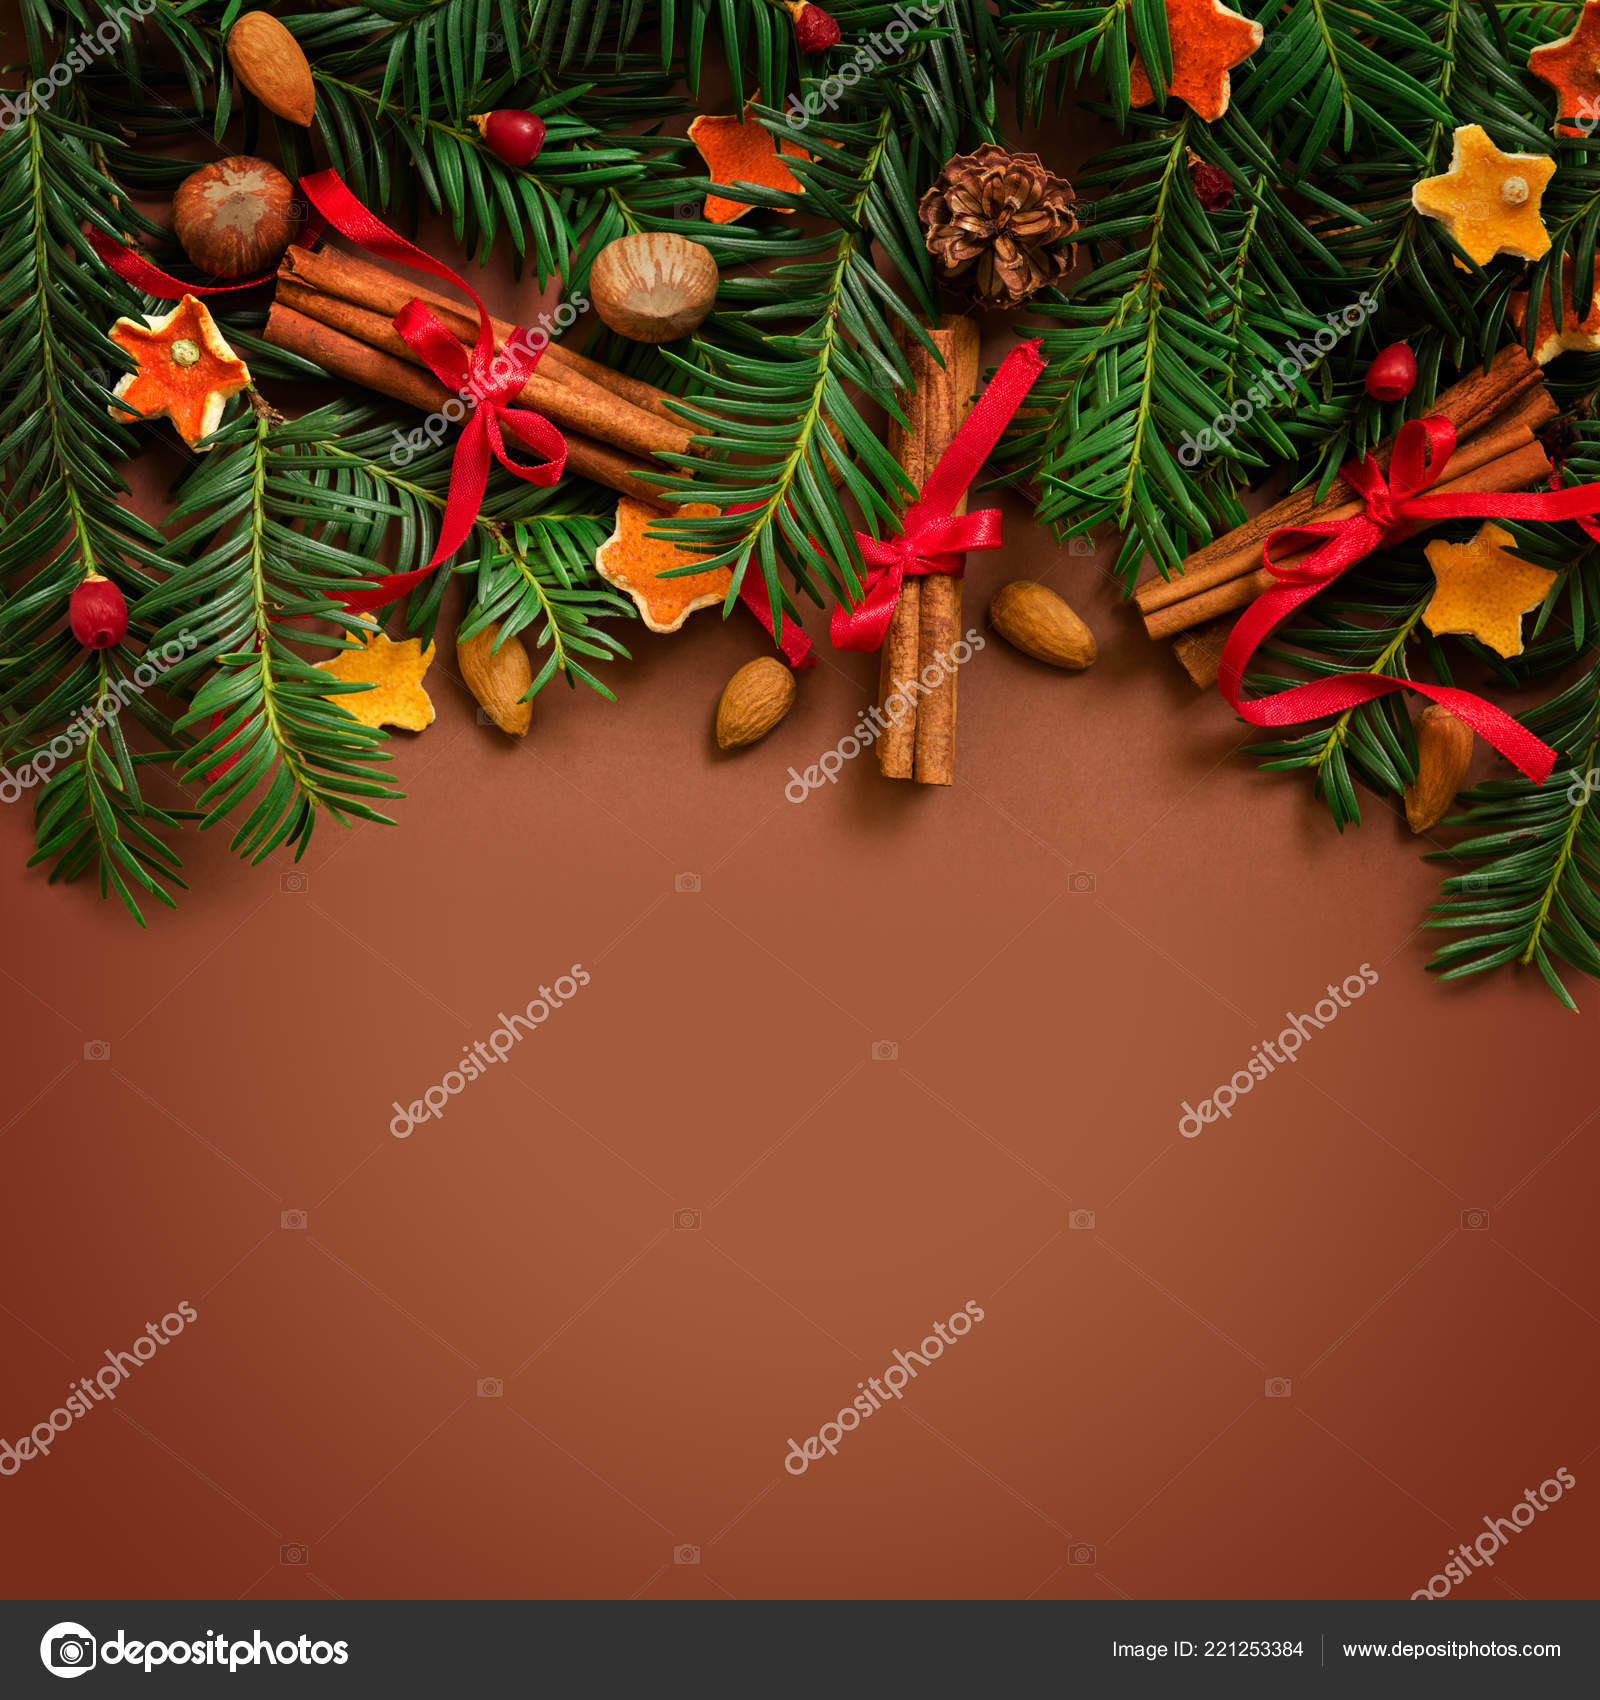 christmas and new year border design on the brown background with fir tree and orange dry decoration and space for text photo by oleshdiz